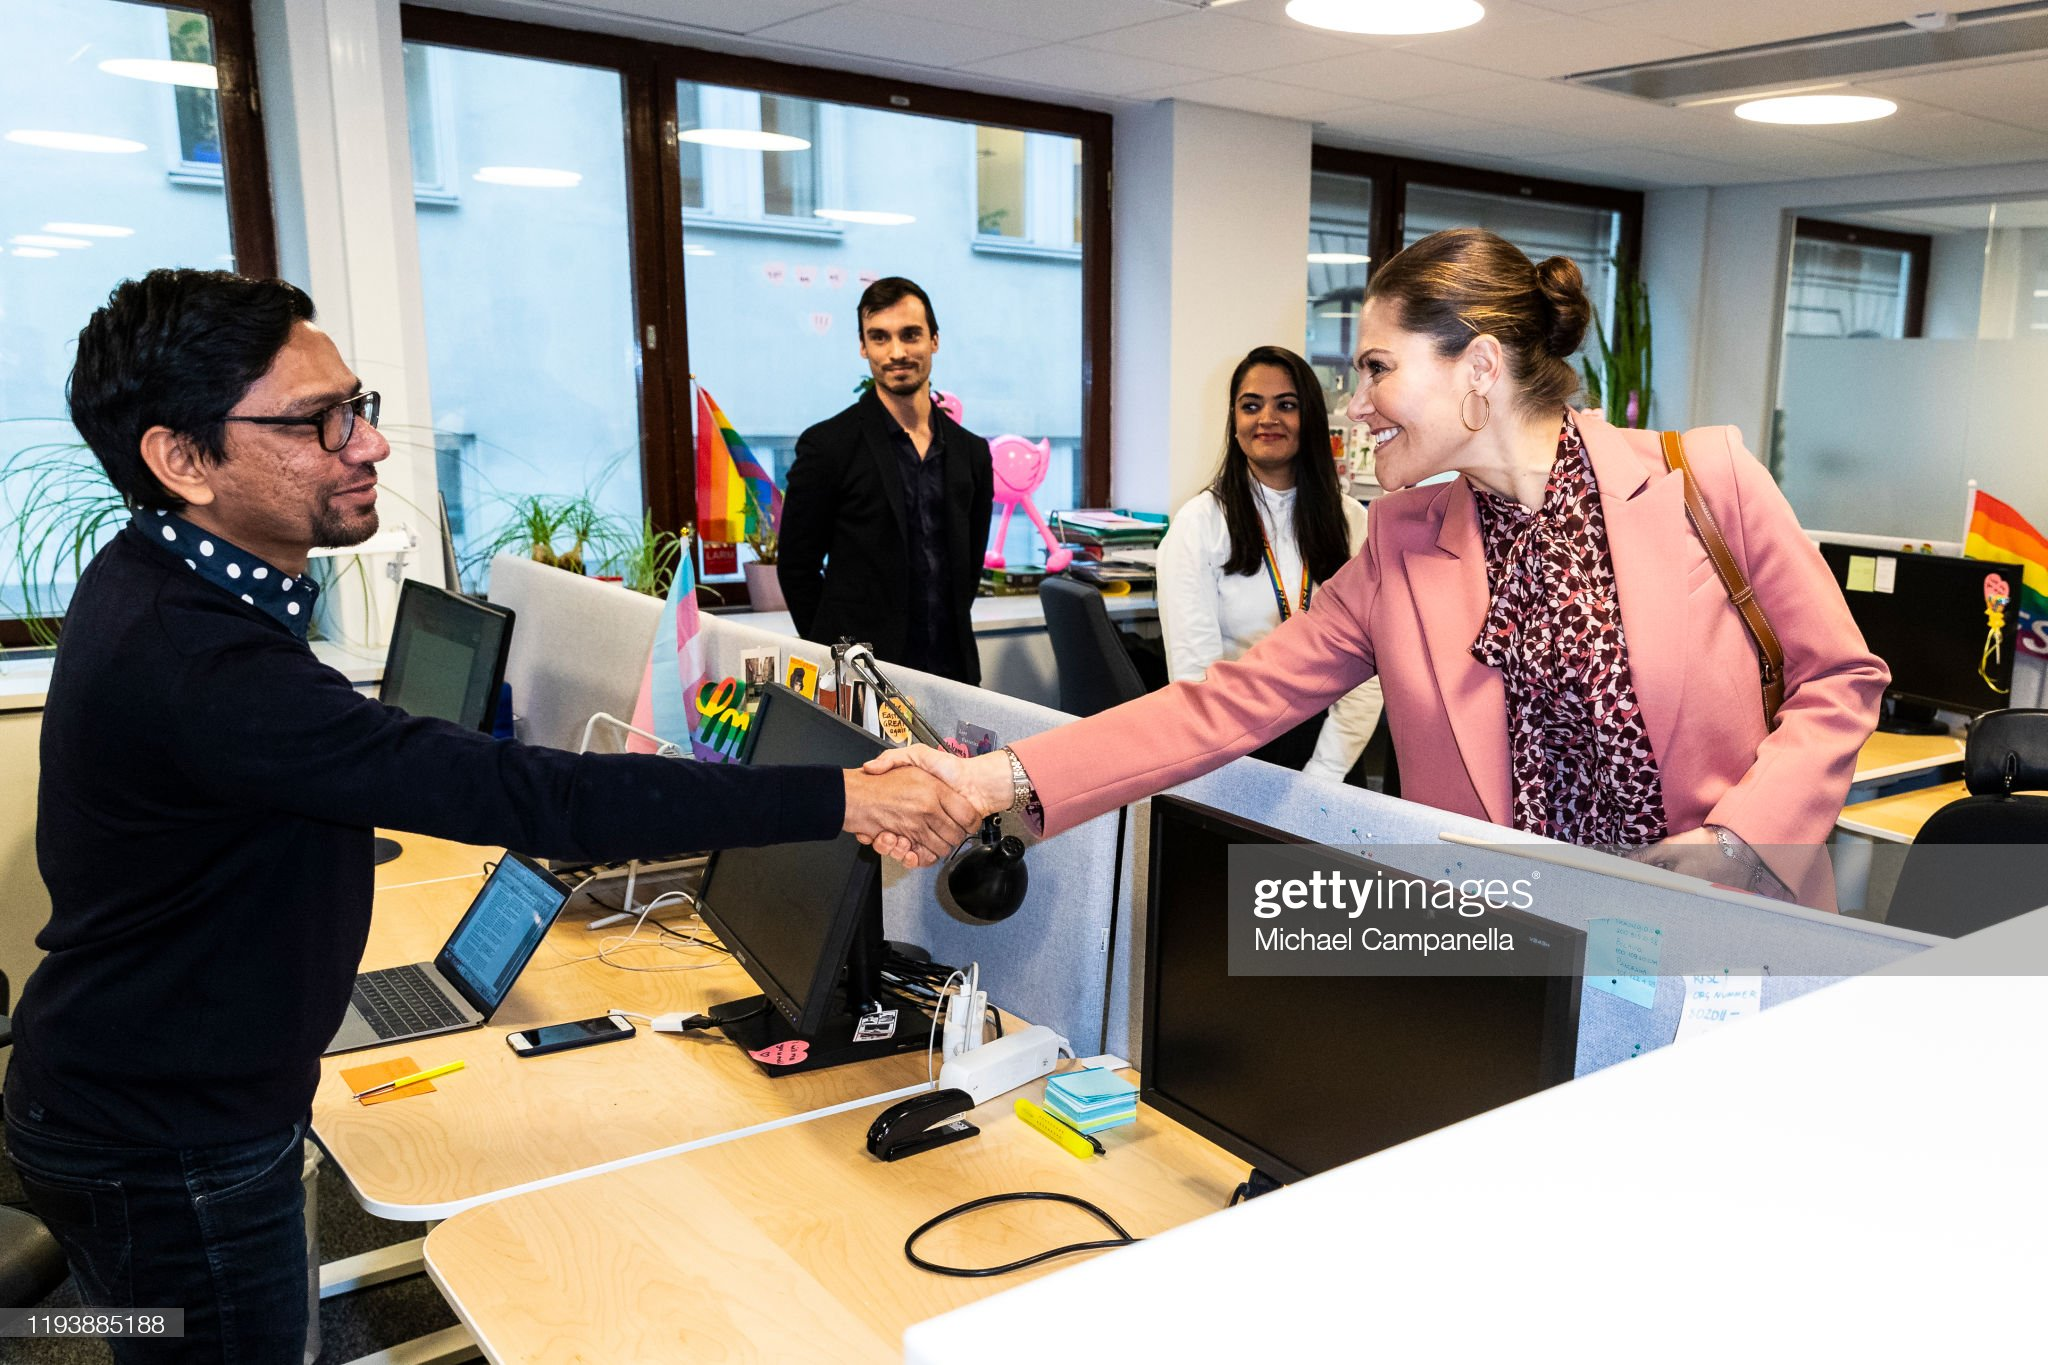 crown-princess-victoria-of-sweden-visits-the-swedish-federation-for-picture-id1193885188